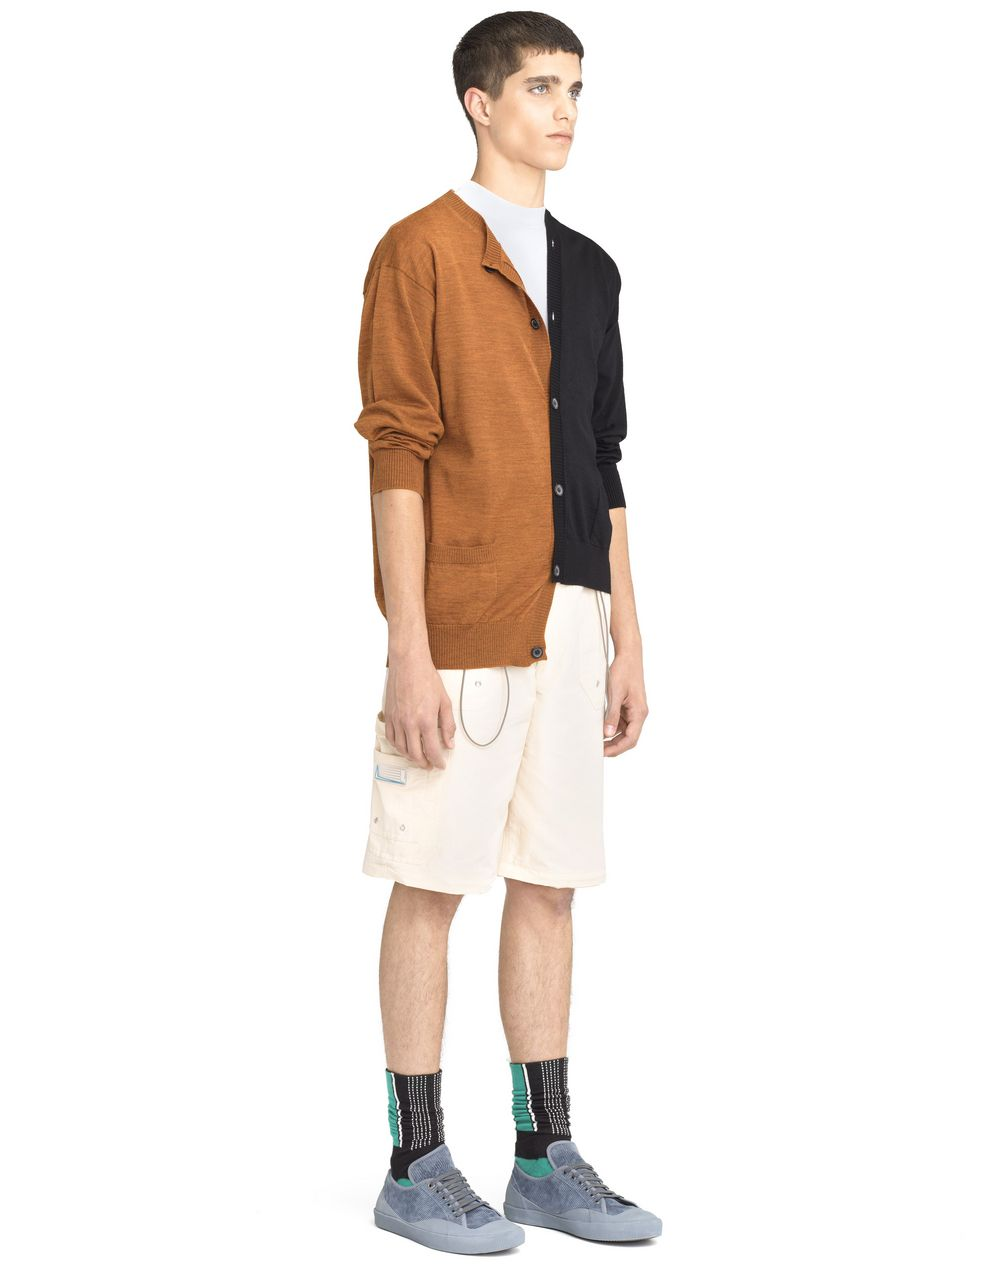 BLACK AND ORANGE DOUBLE-BUTTONED CARDIGAN  - Lanvin